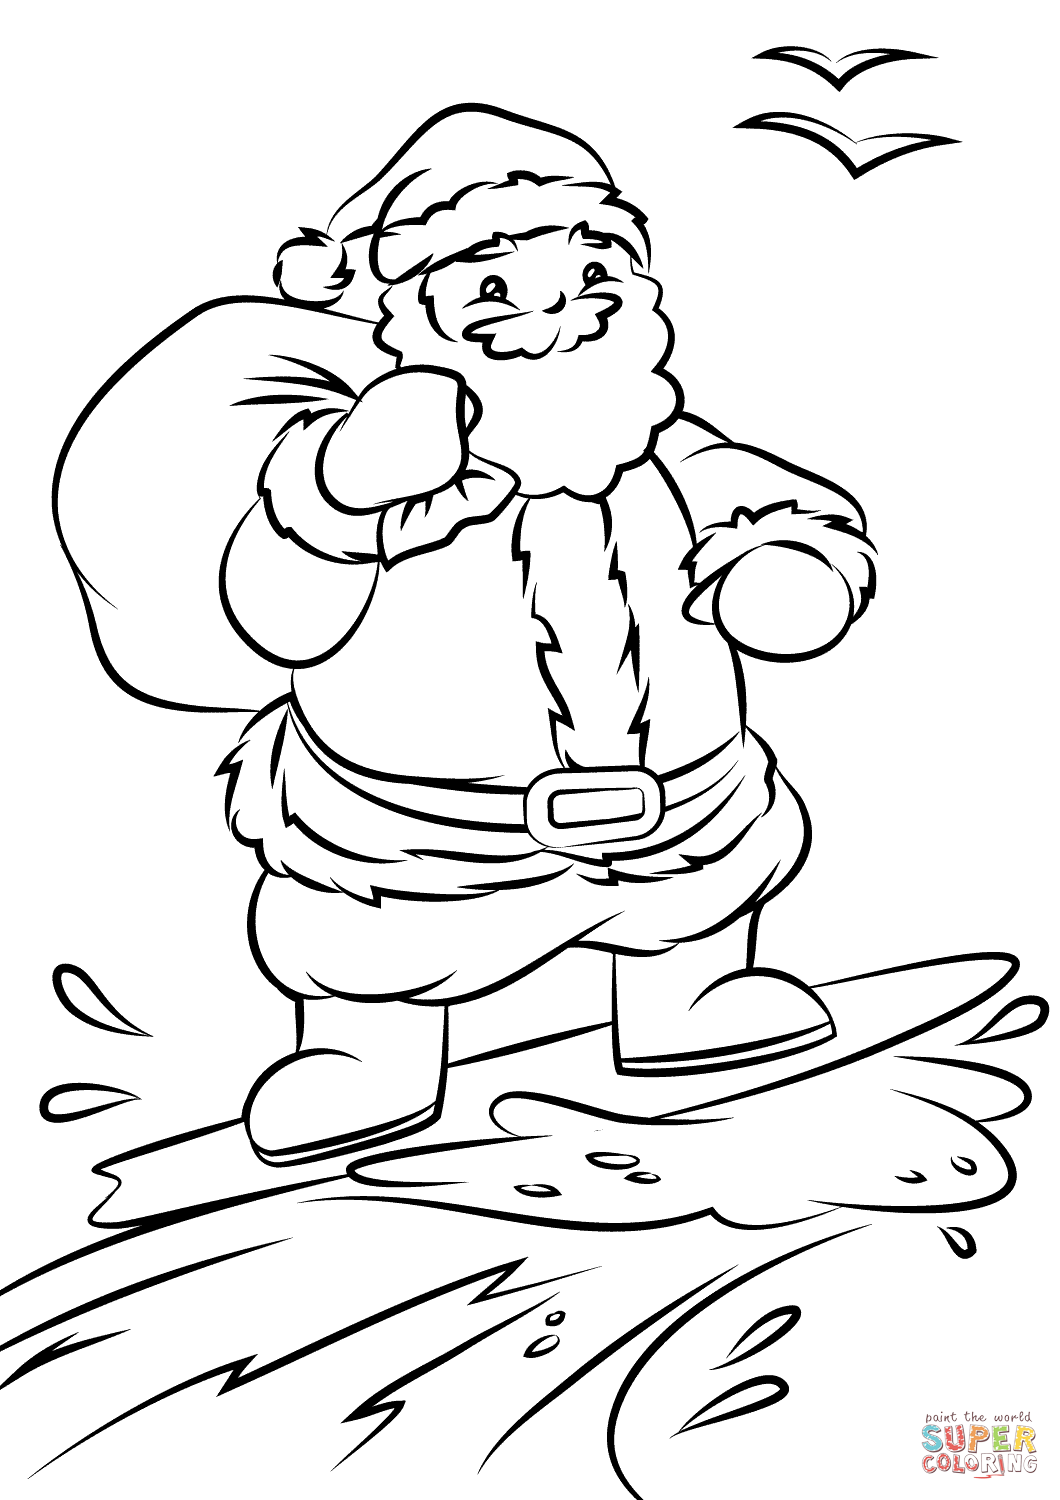 Santa Colouring Games With Surfing Coloring Page Free Printable Pages